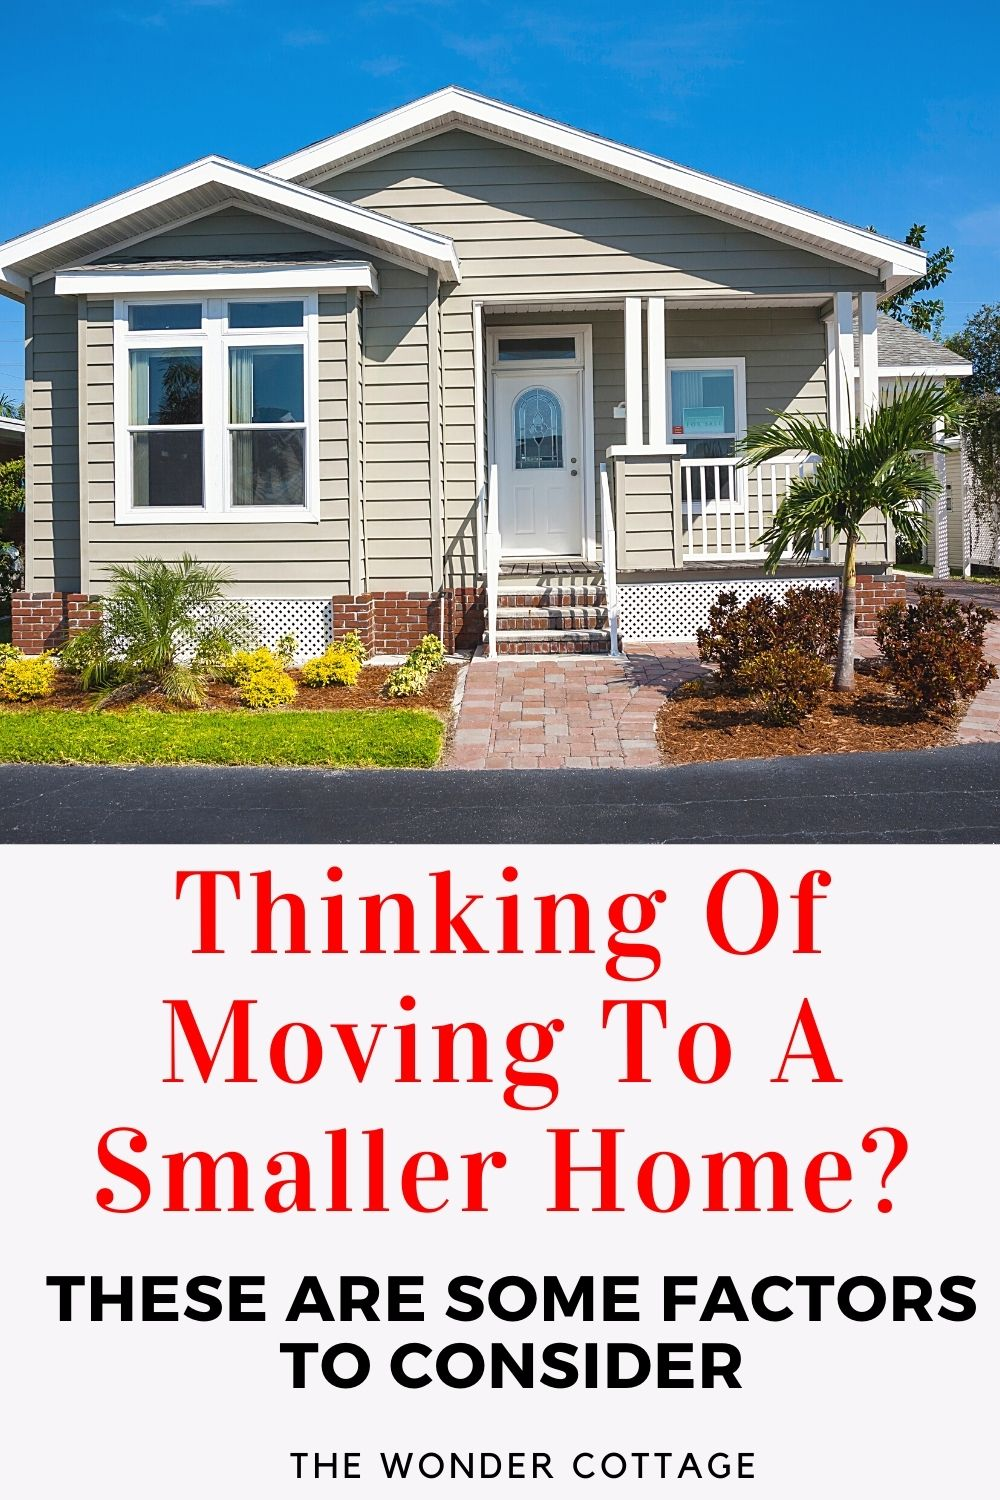 Things to consider if you are thinking of moving to a smaller home